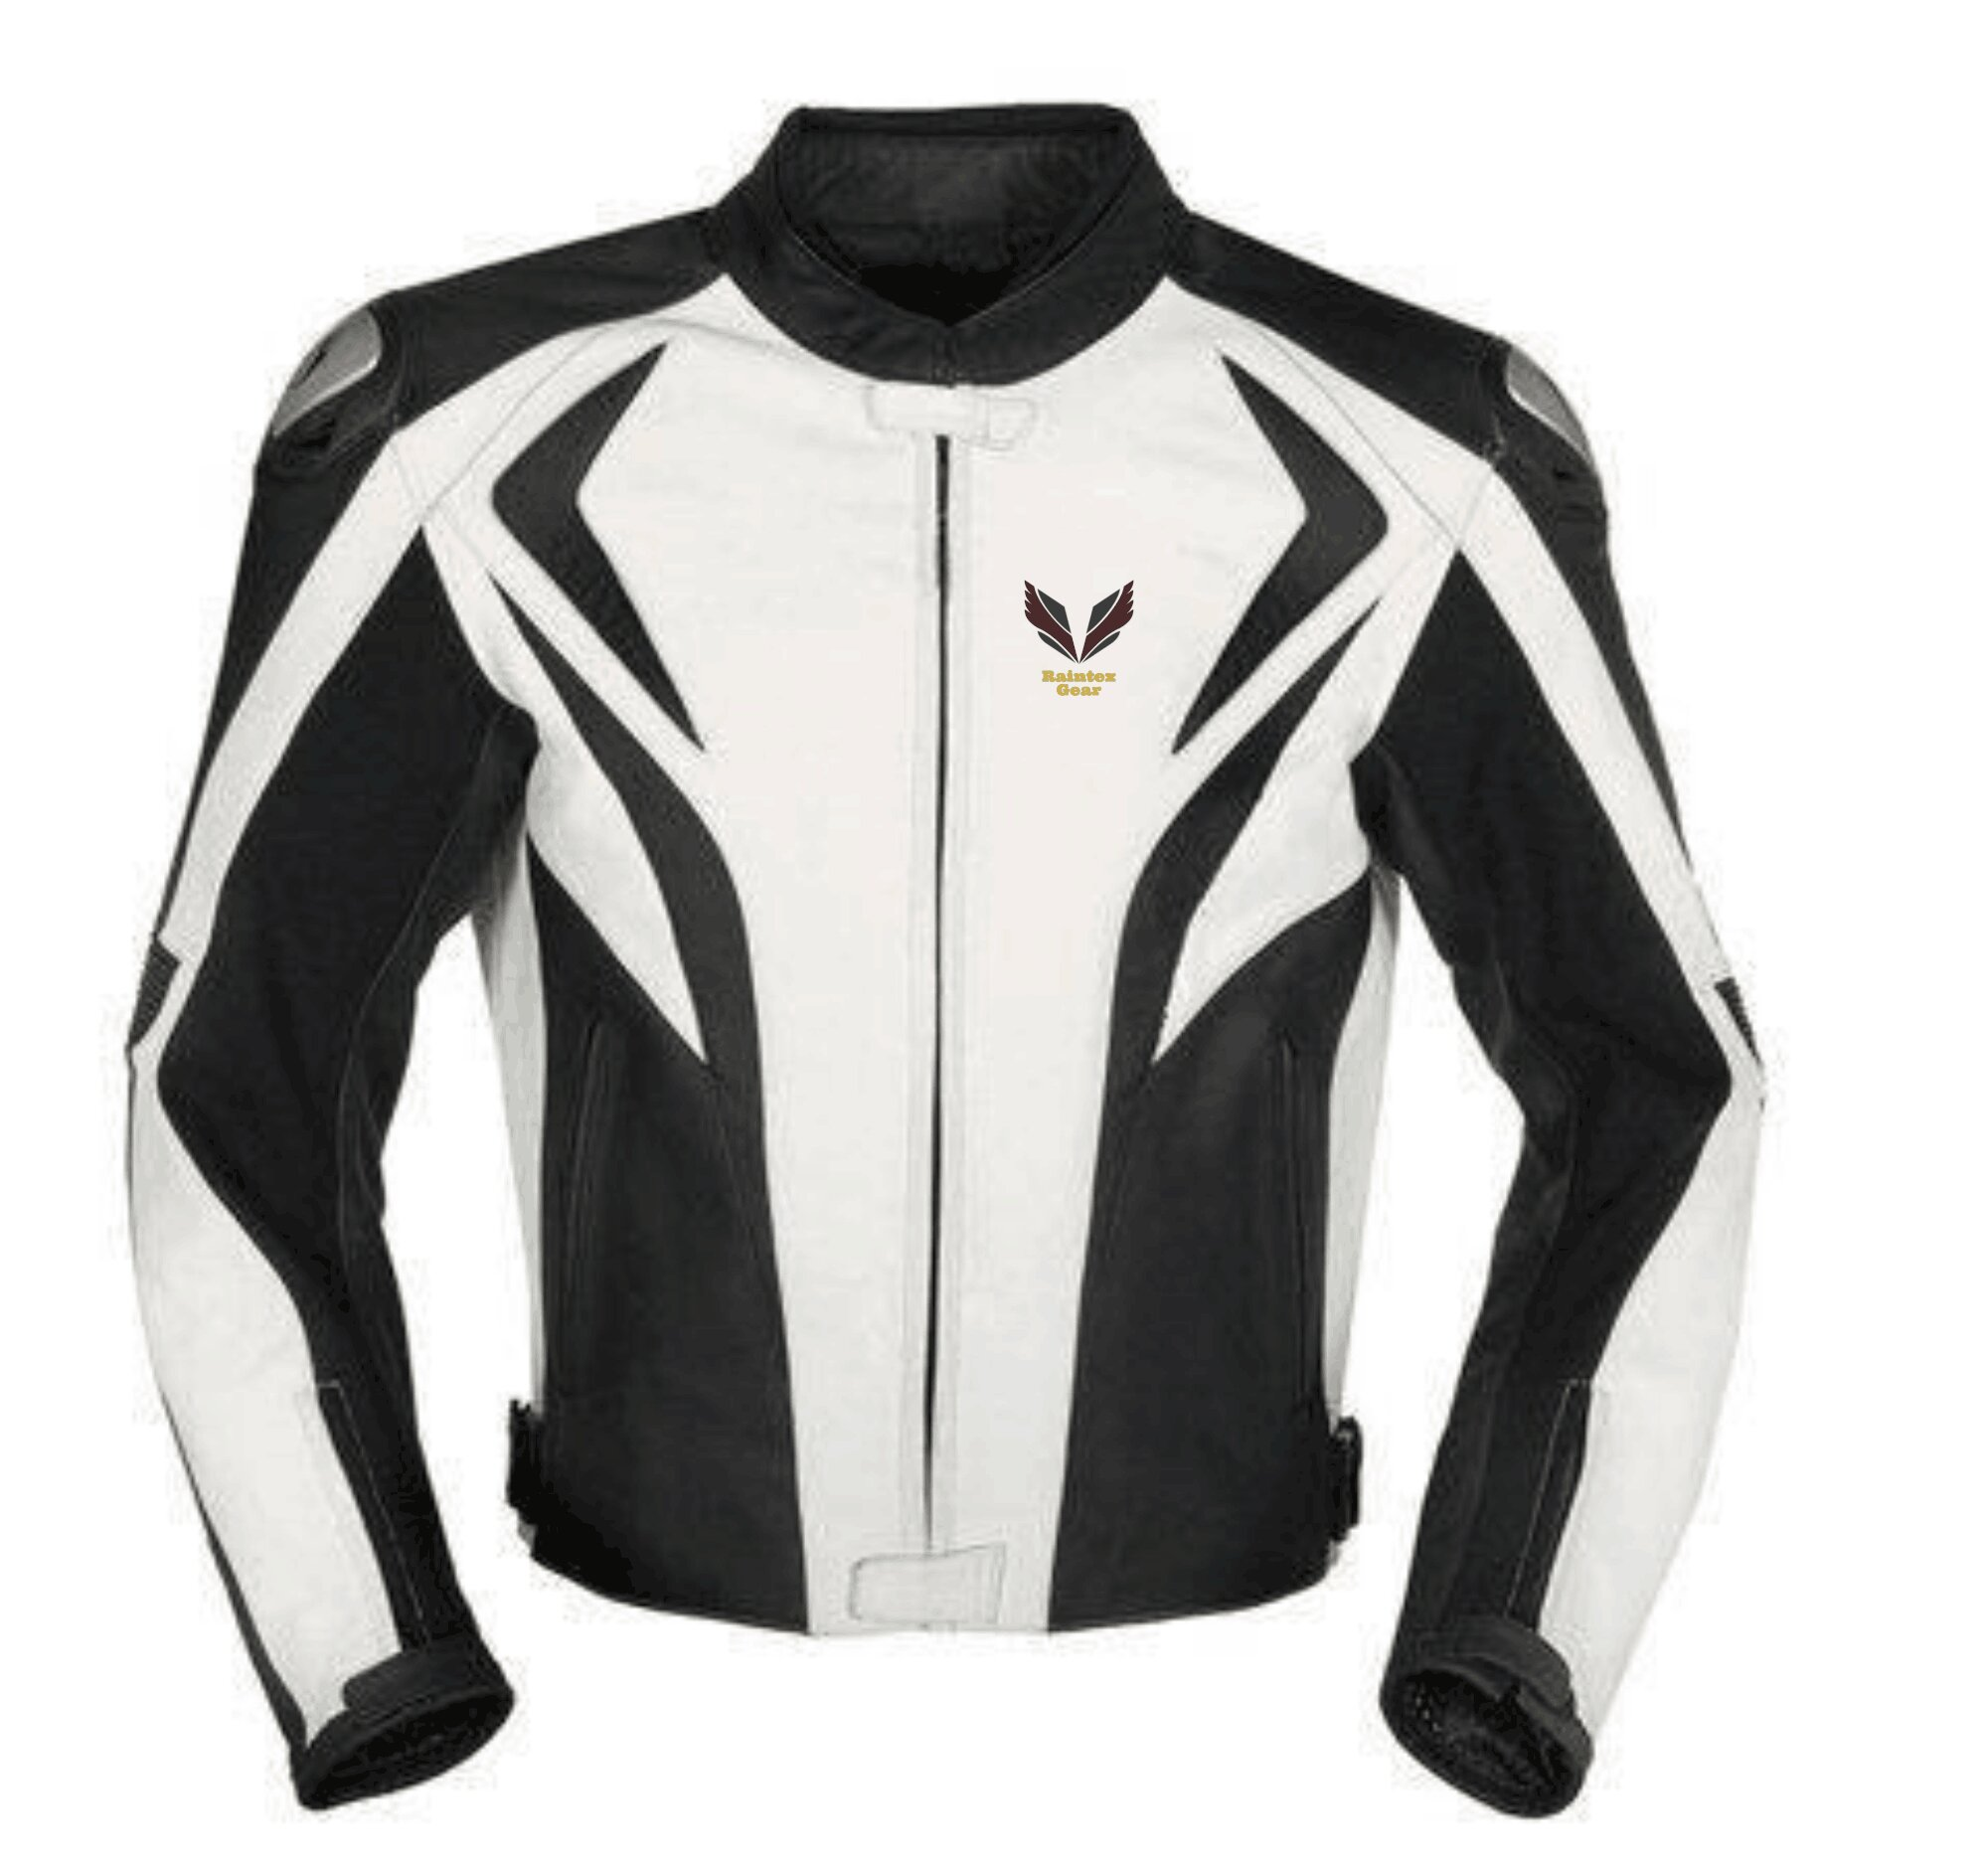 Black and white motorycle jacket with armor protection